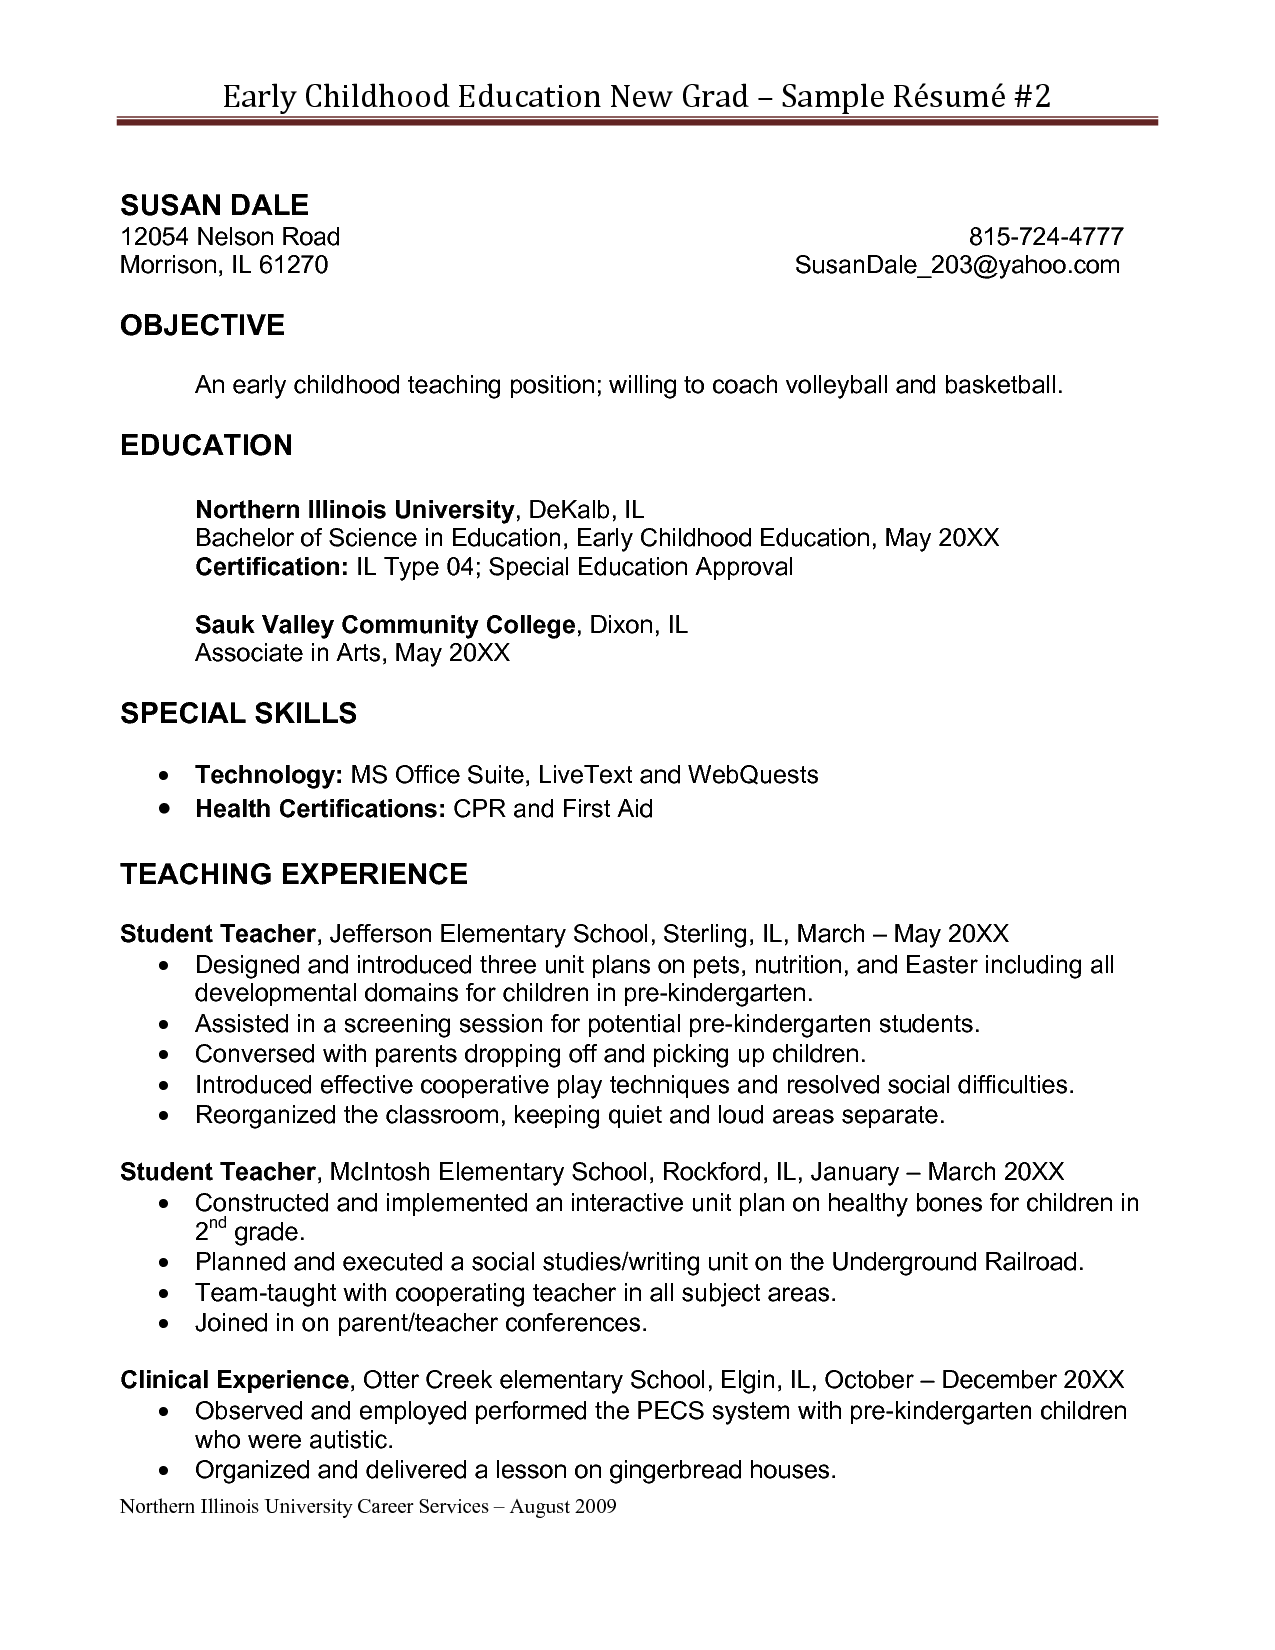 Early Childhood Education Resume Objective Shebs Pinterest